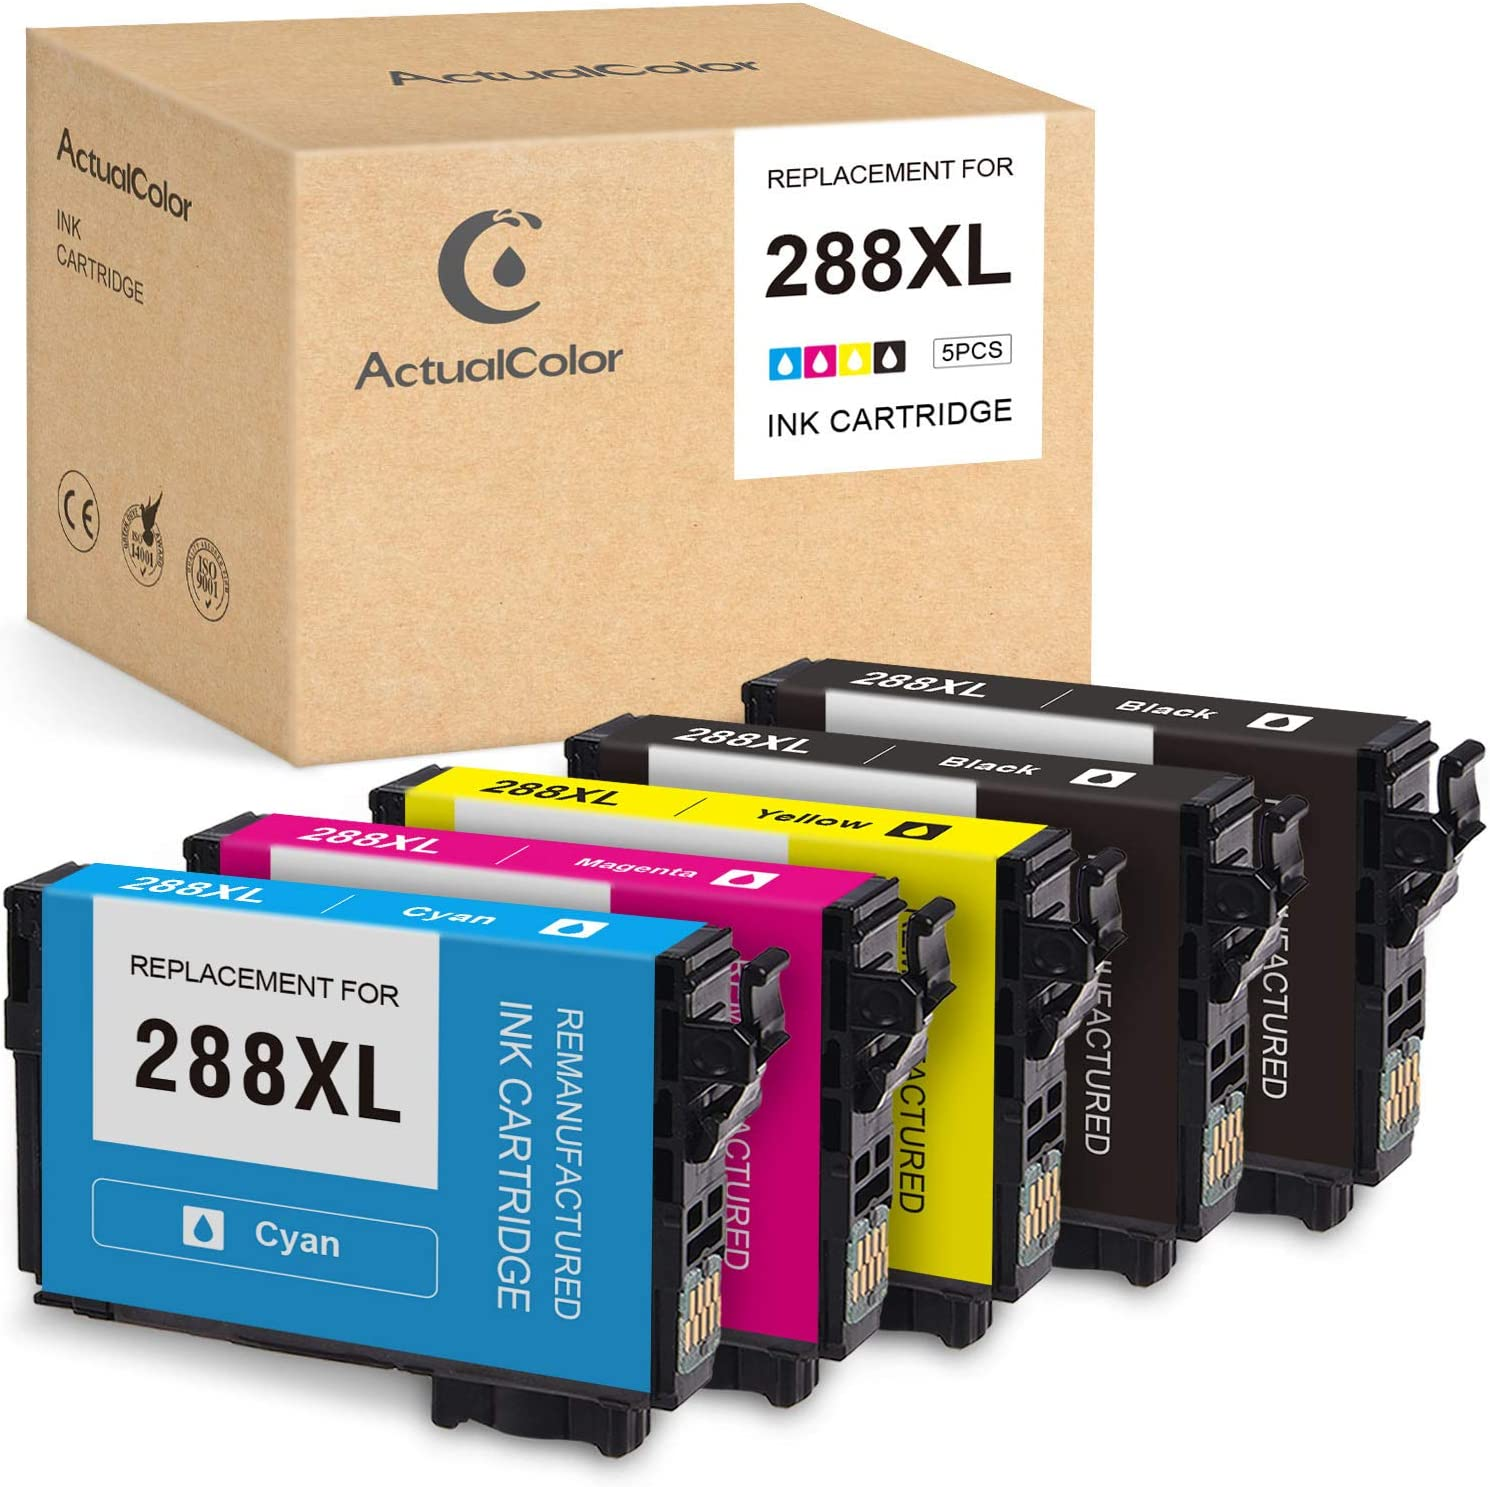 ActualColor C Remanufactured Ink Cartridge Replacement for Epson 288XL 288 XL T288XL Ink Cartridges for Expression Home XP-440 XP-430 XP-340 XP-330 XP-446 XP-434(Black, Cyan, Magenta, Yellow, 5-Pack)